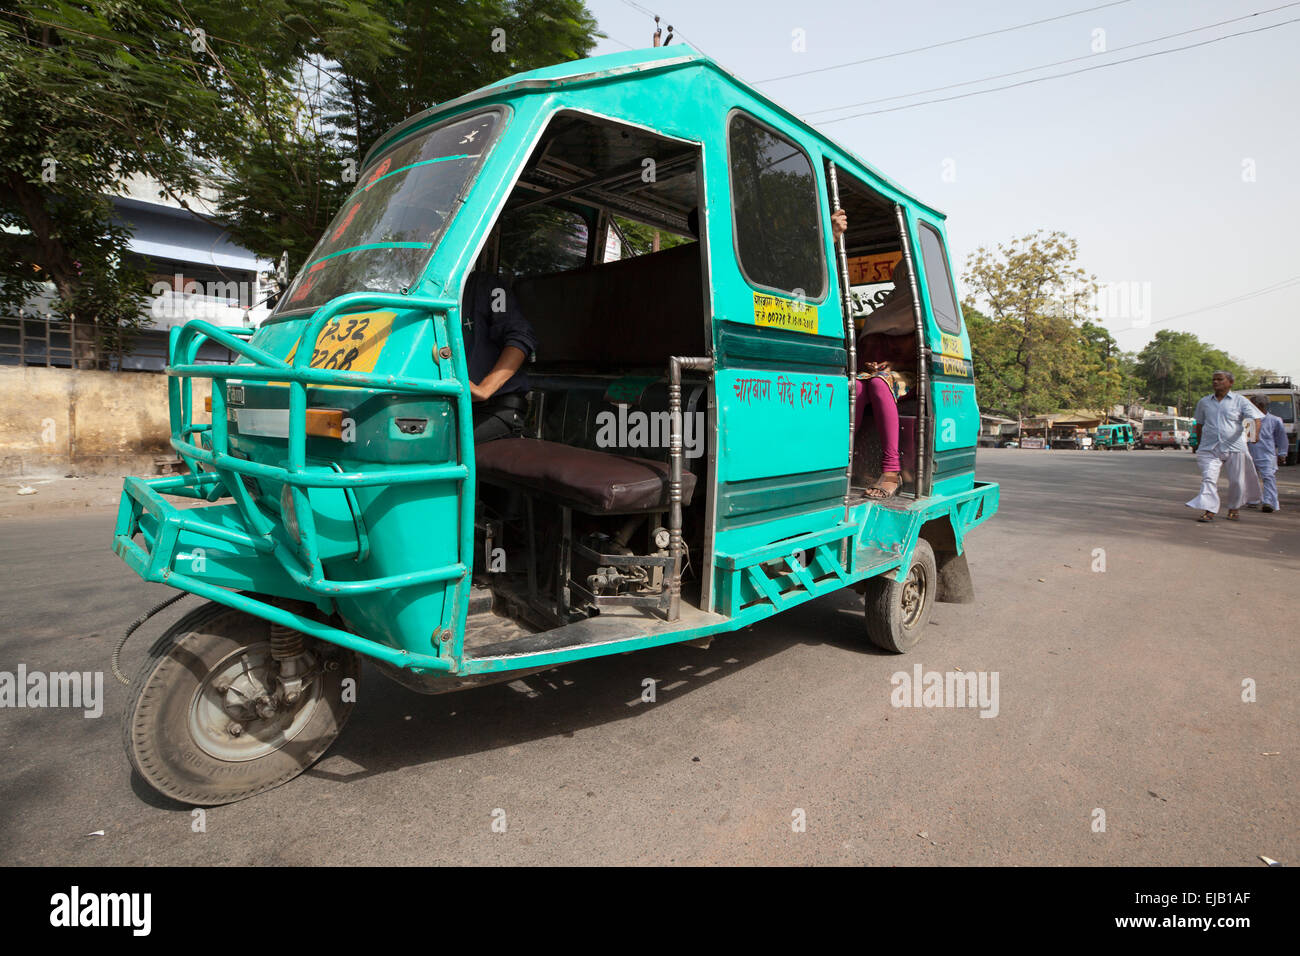 Three Wheeler Tempo >> Three wheeler Tempo tricycle taxi bus in Lucknow city street, Uttar Stock Photo: 80147831 - Alamy